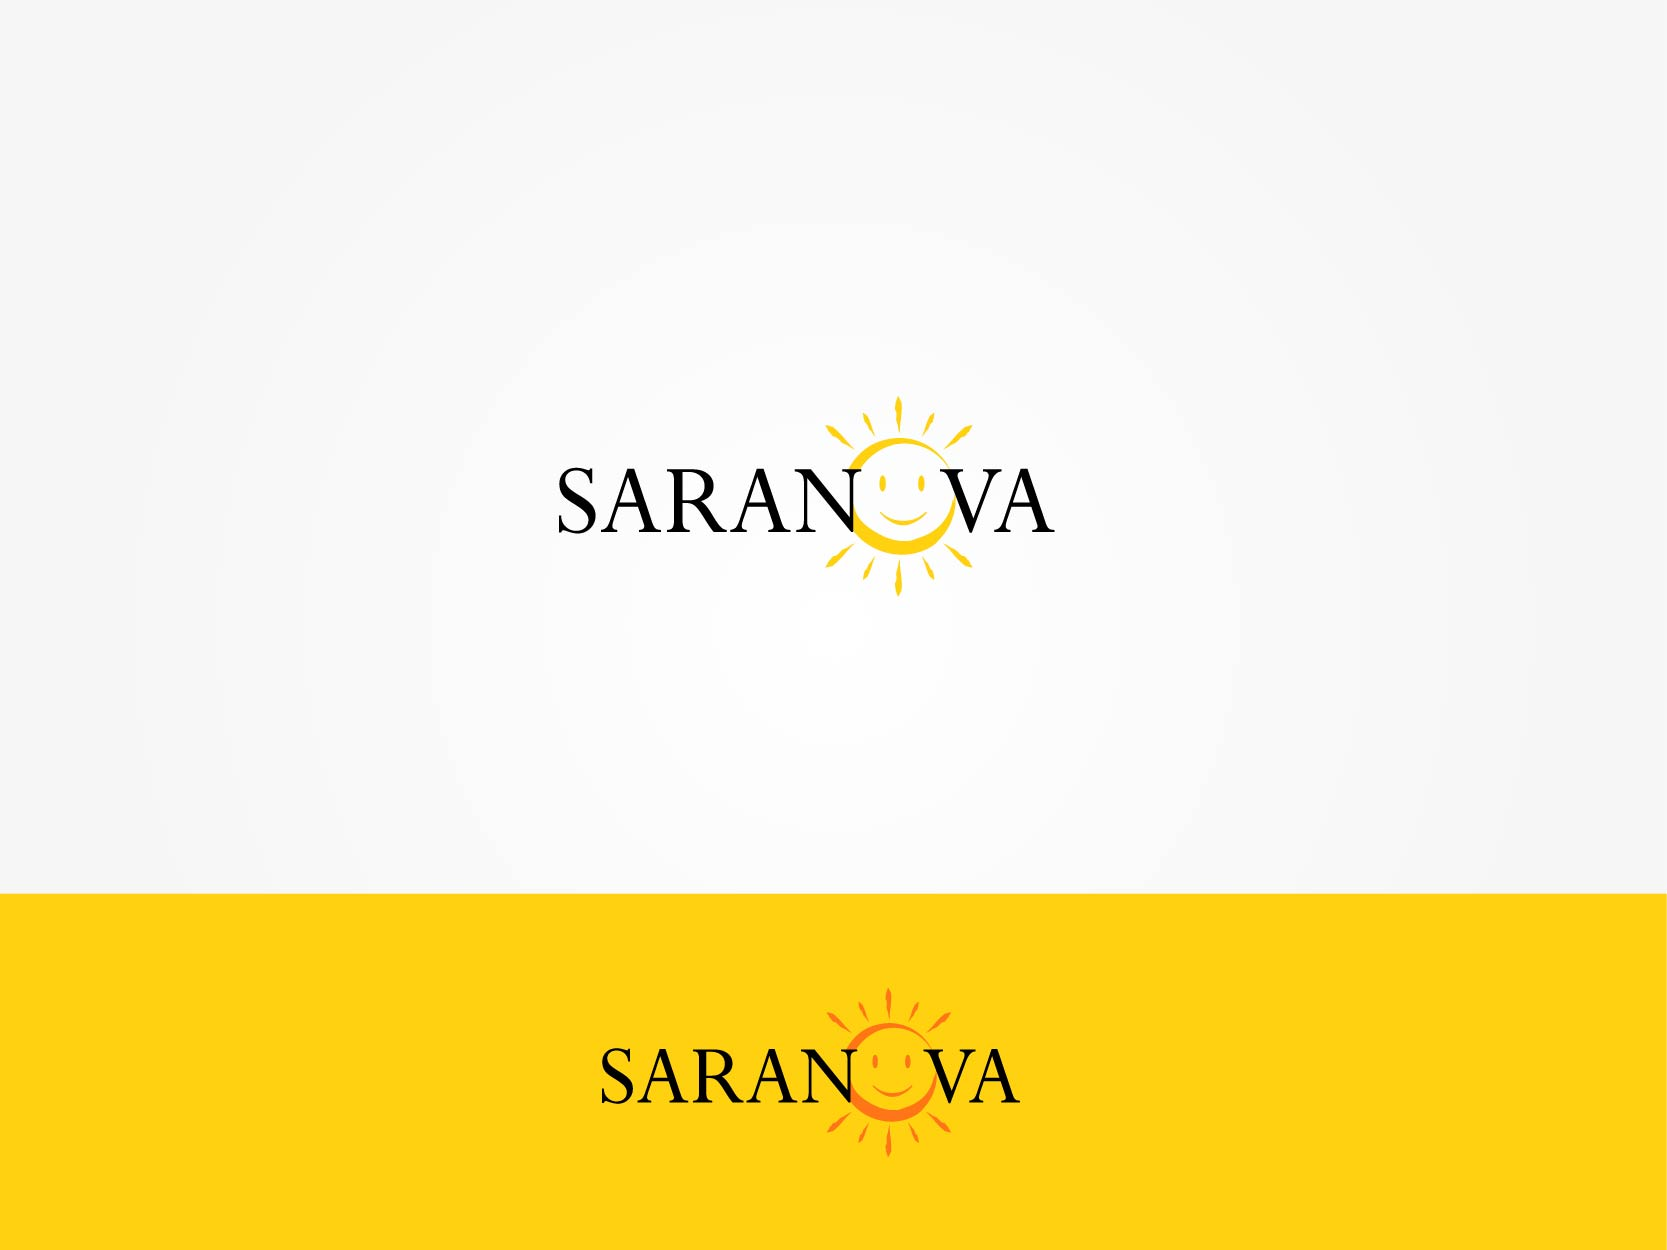 Logo Design by Osi Indra - Entry No. 70 in the Logo Design Contest Artistic Logo Design for Saranova.